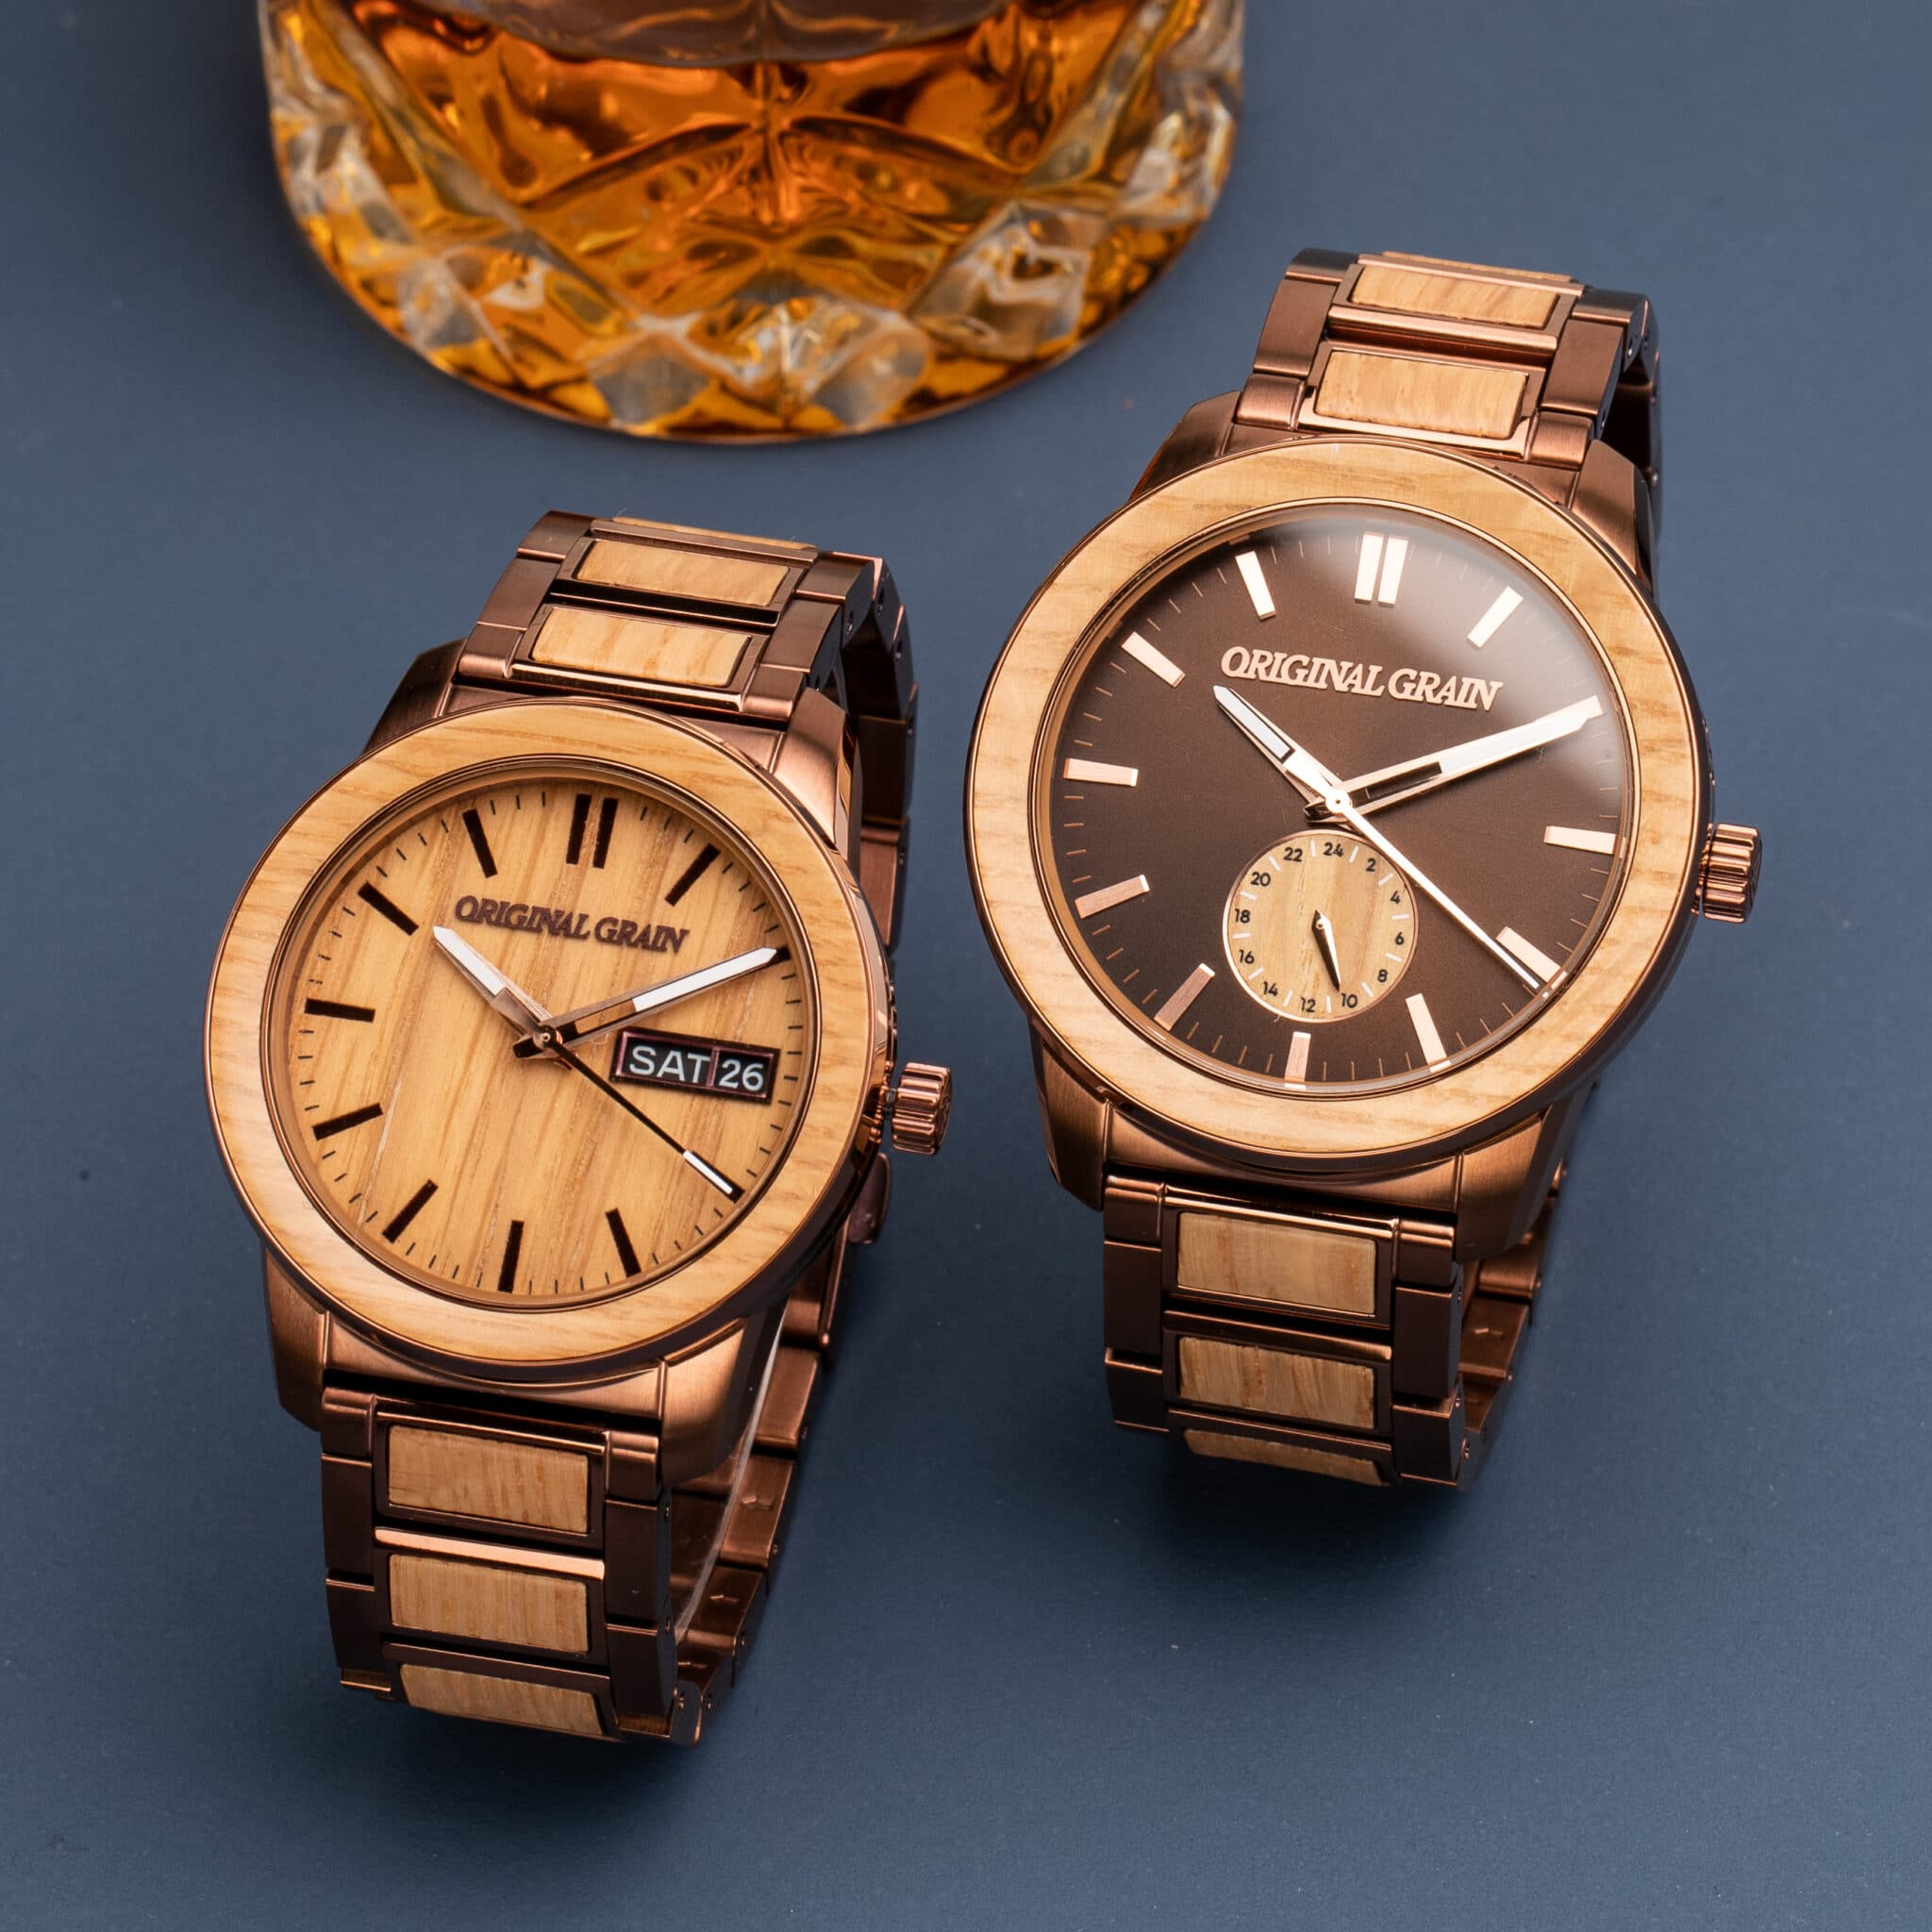 whiskey barrel original grain watches